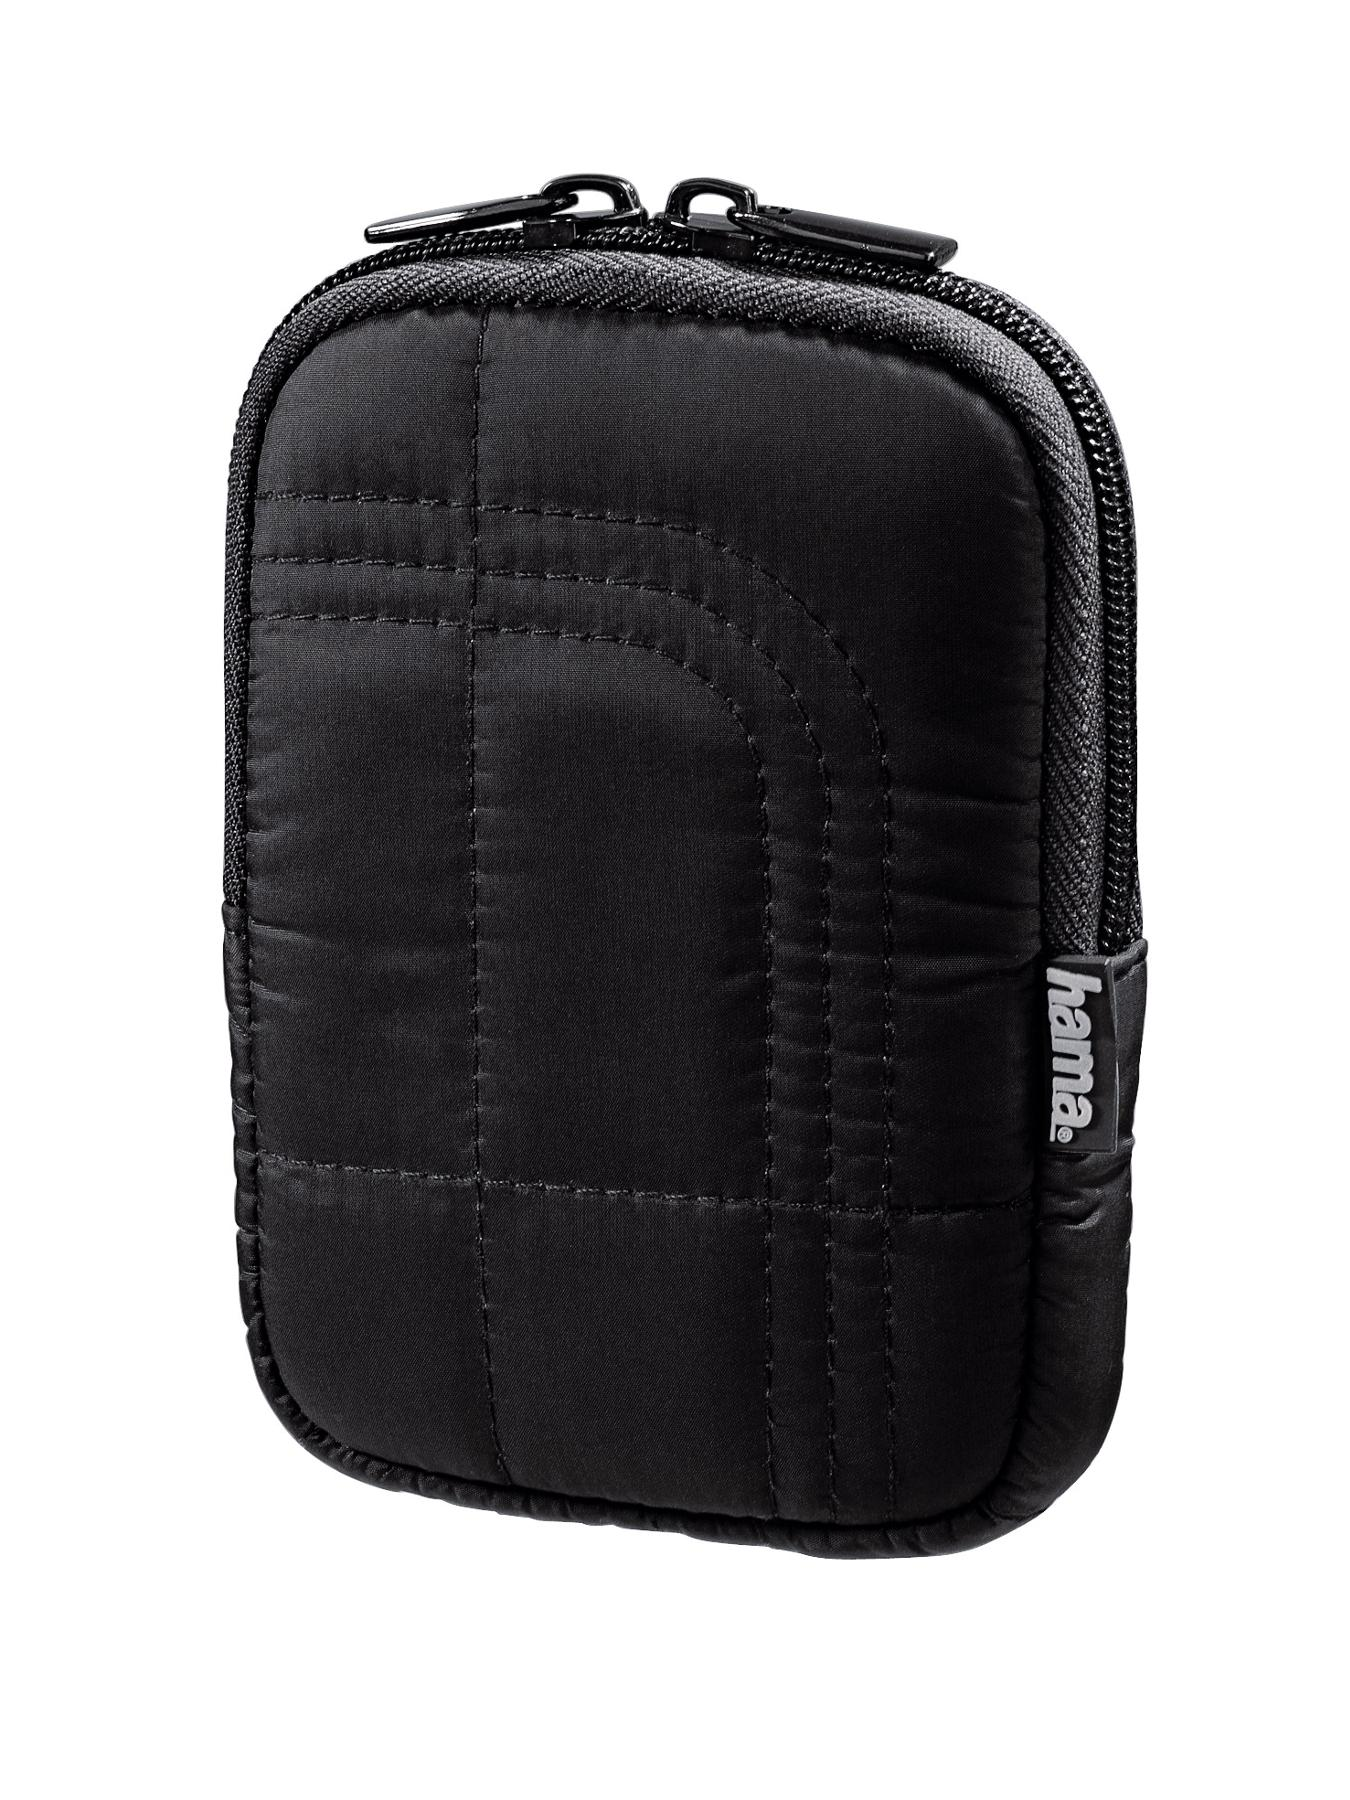 Fancy Memory 50C Camera Bag - Black